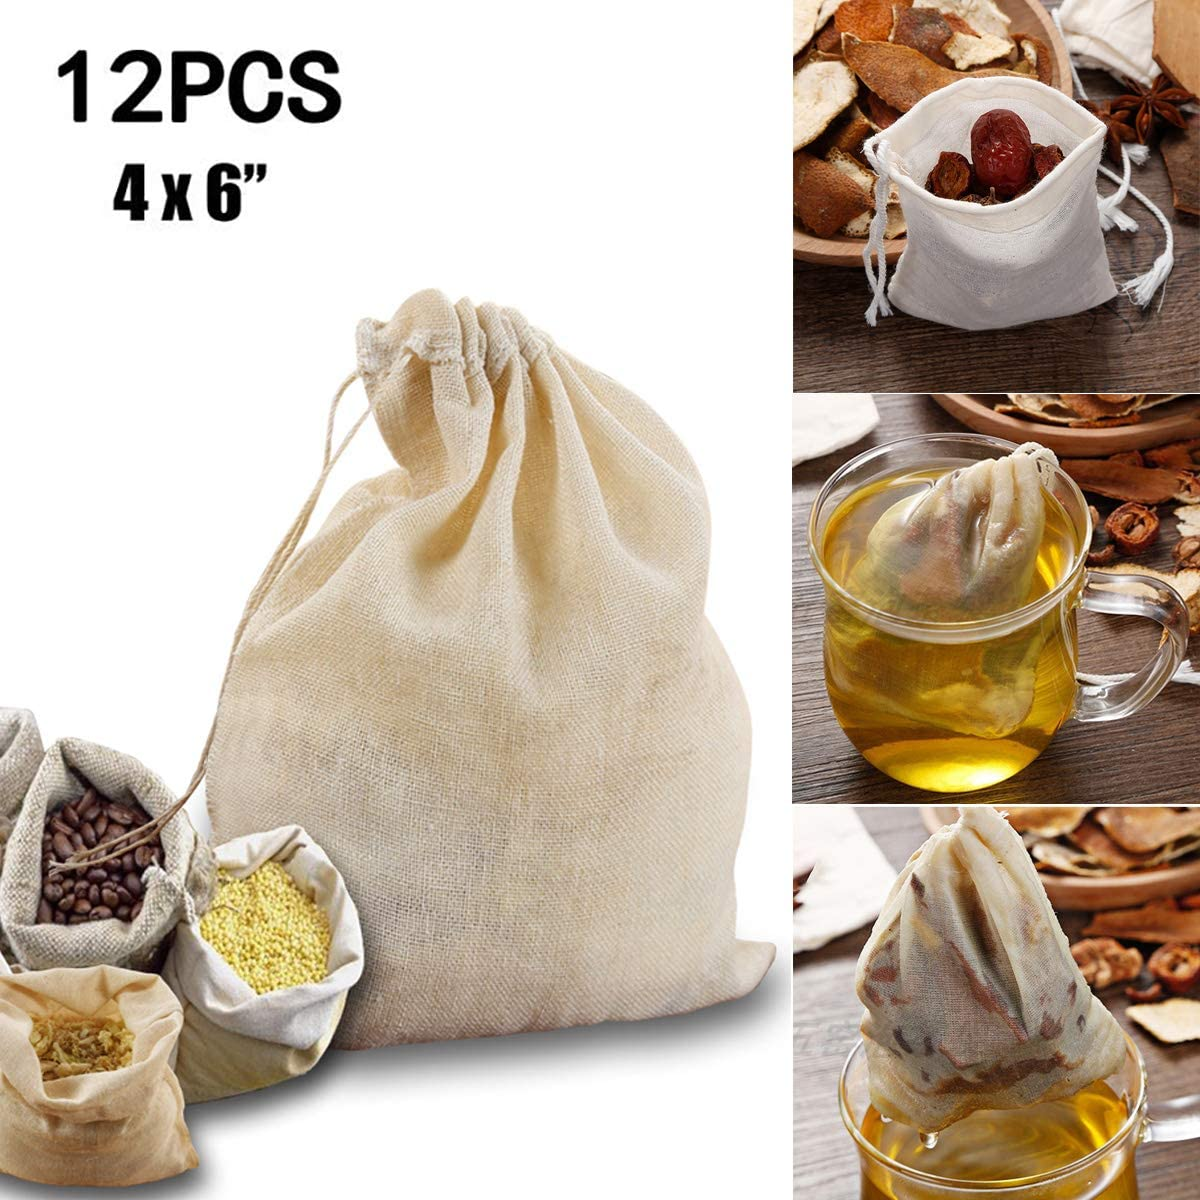 Awinking 12 Packs Reusable Drawstring Cotton Soup Bags, Washable Cheesecloth Bags for Straining Soup, Herbs, Bone Broth, Coffee, Tea (4'' x 6'')